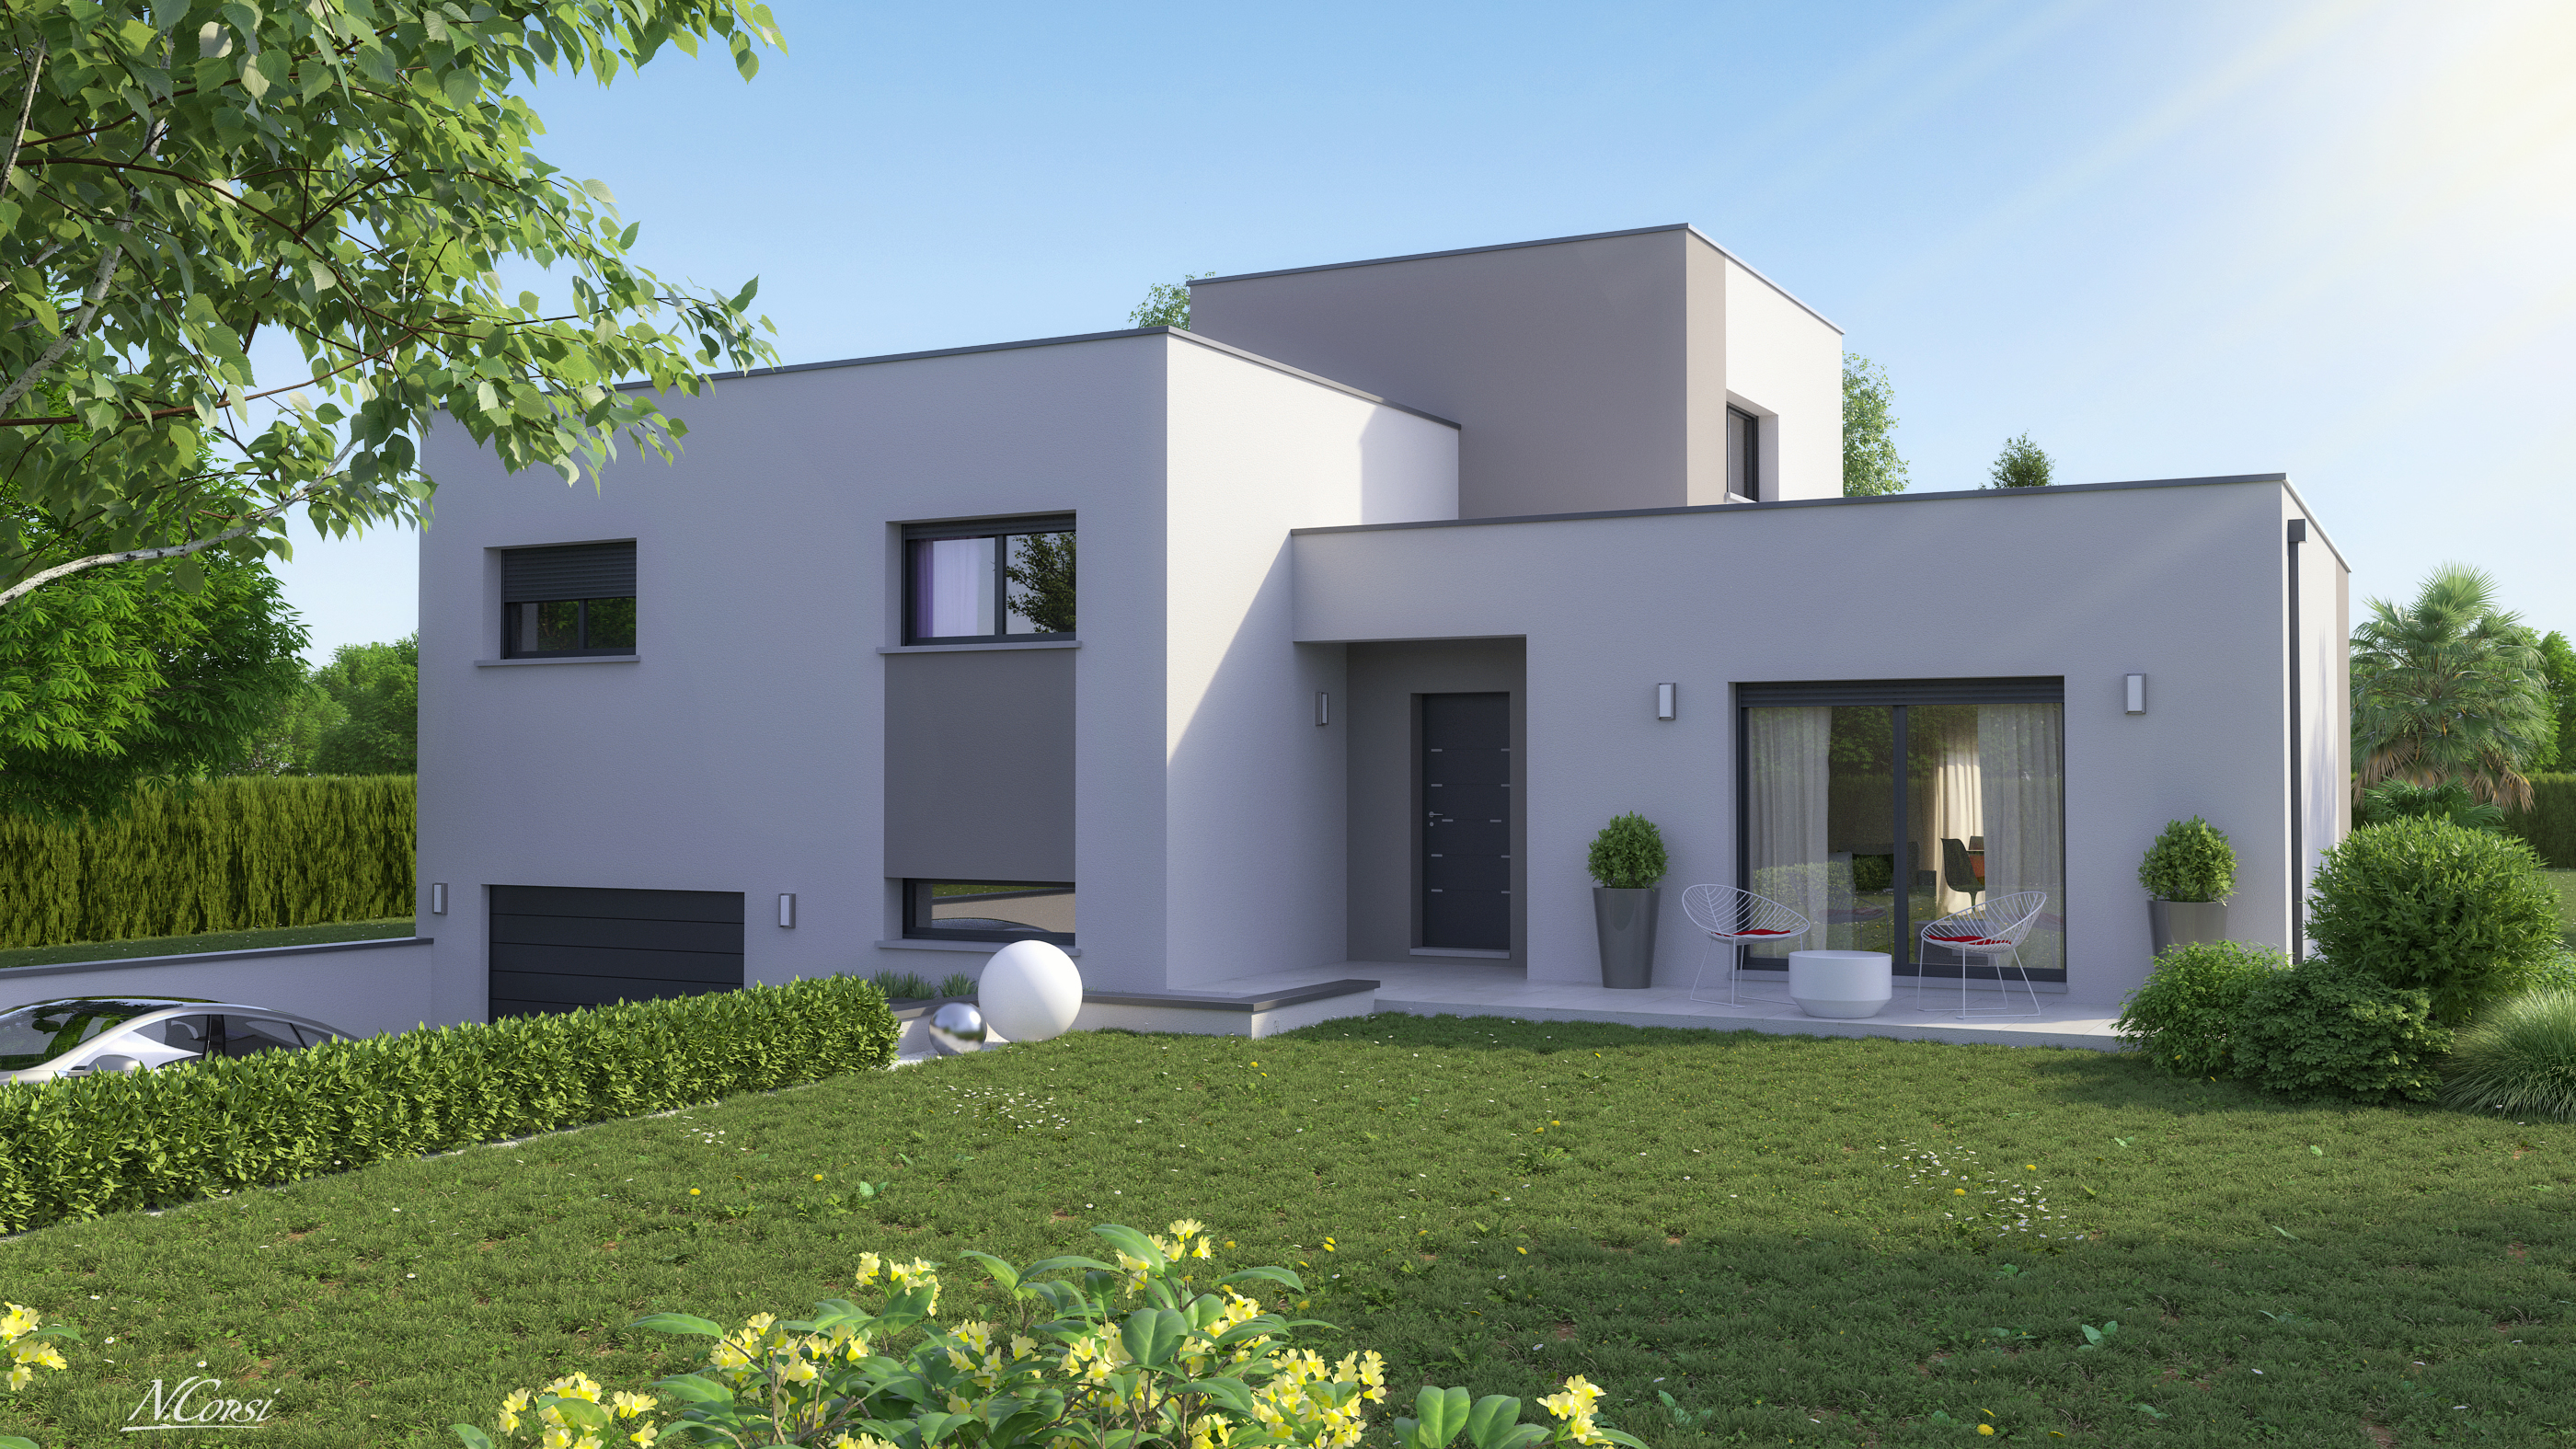 Maison design demi tage toit plat clara logivelay for Transformer une maison traditionnelle en contemporaine